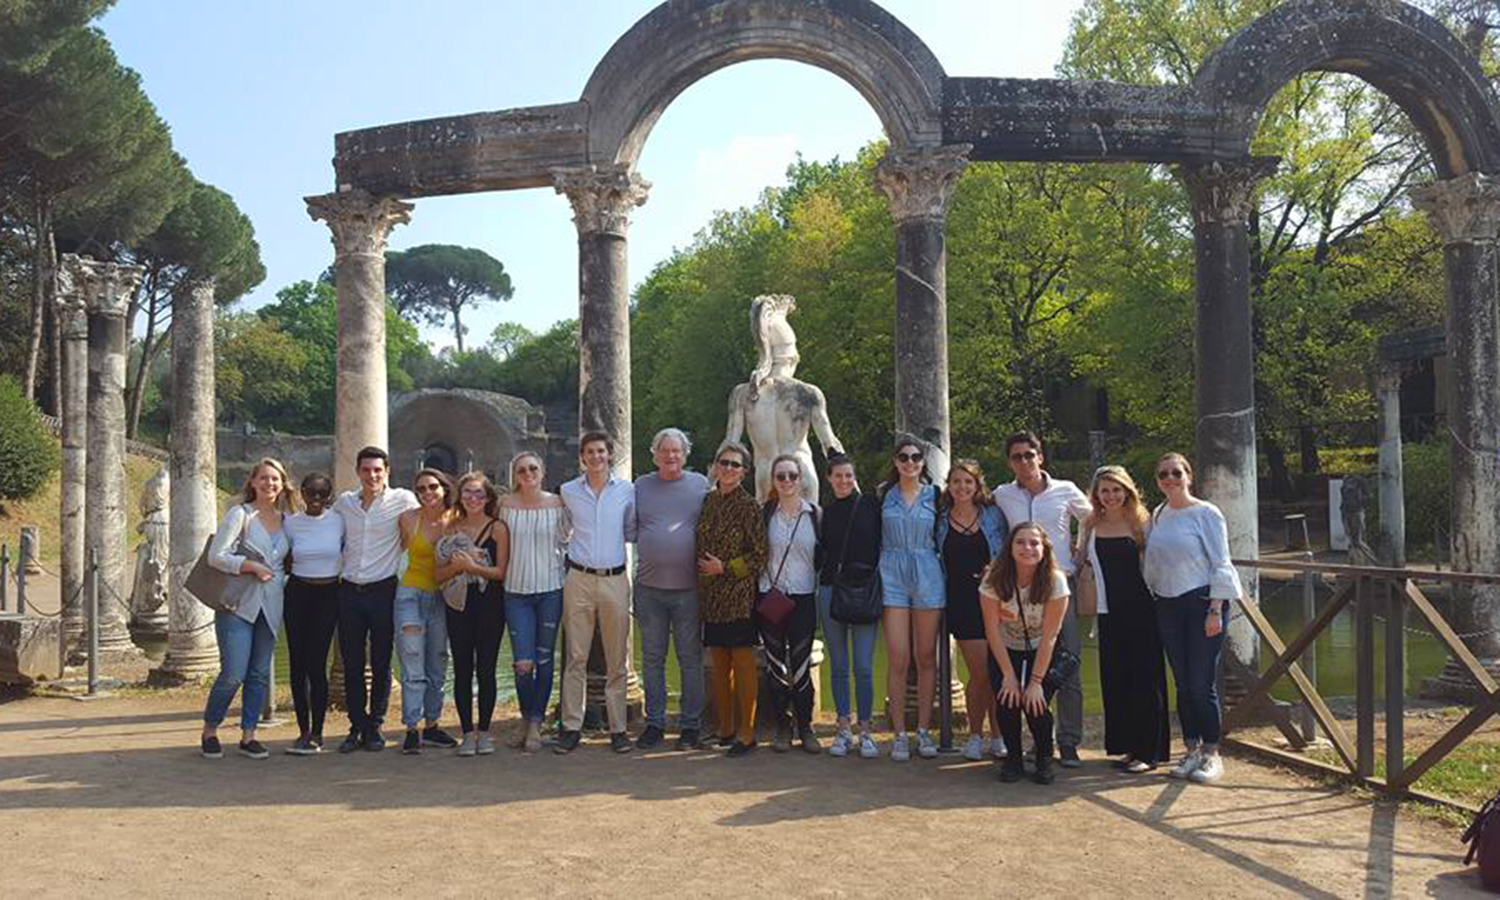 Rome Italy Abroad Studies: Picture of Group April 8, 2017 Tivoli Gardens